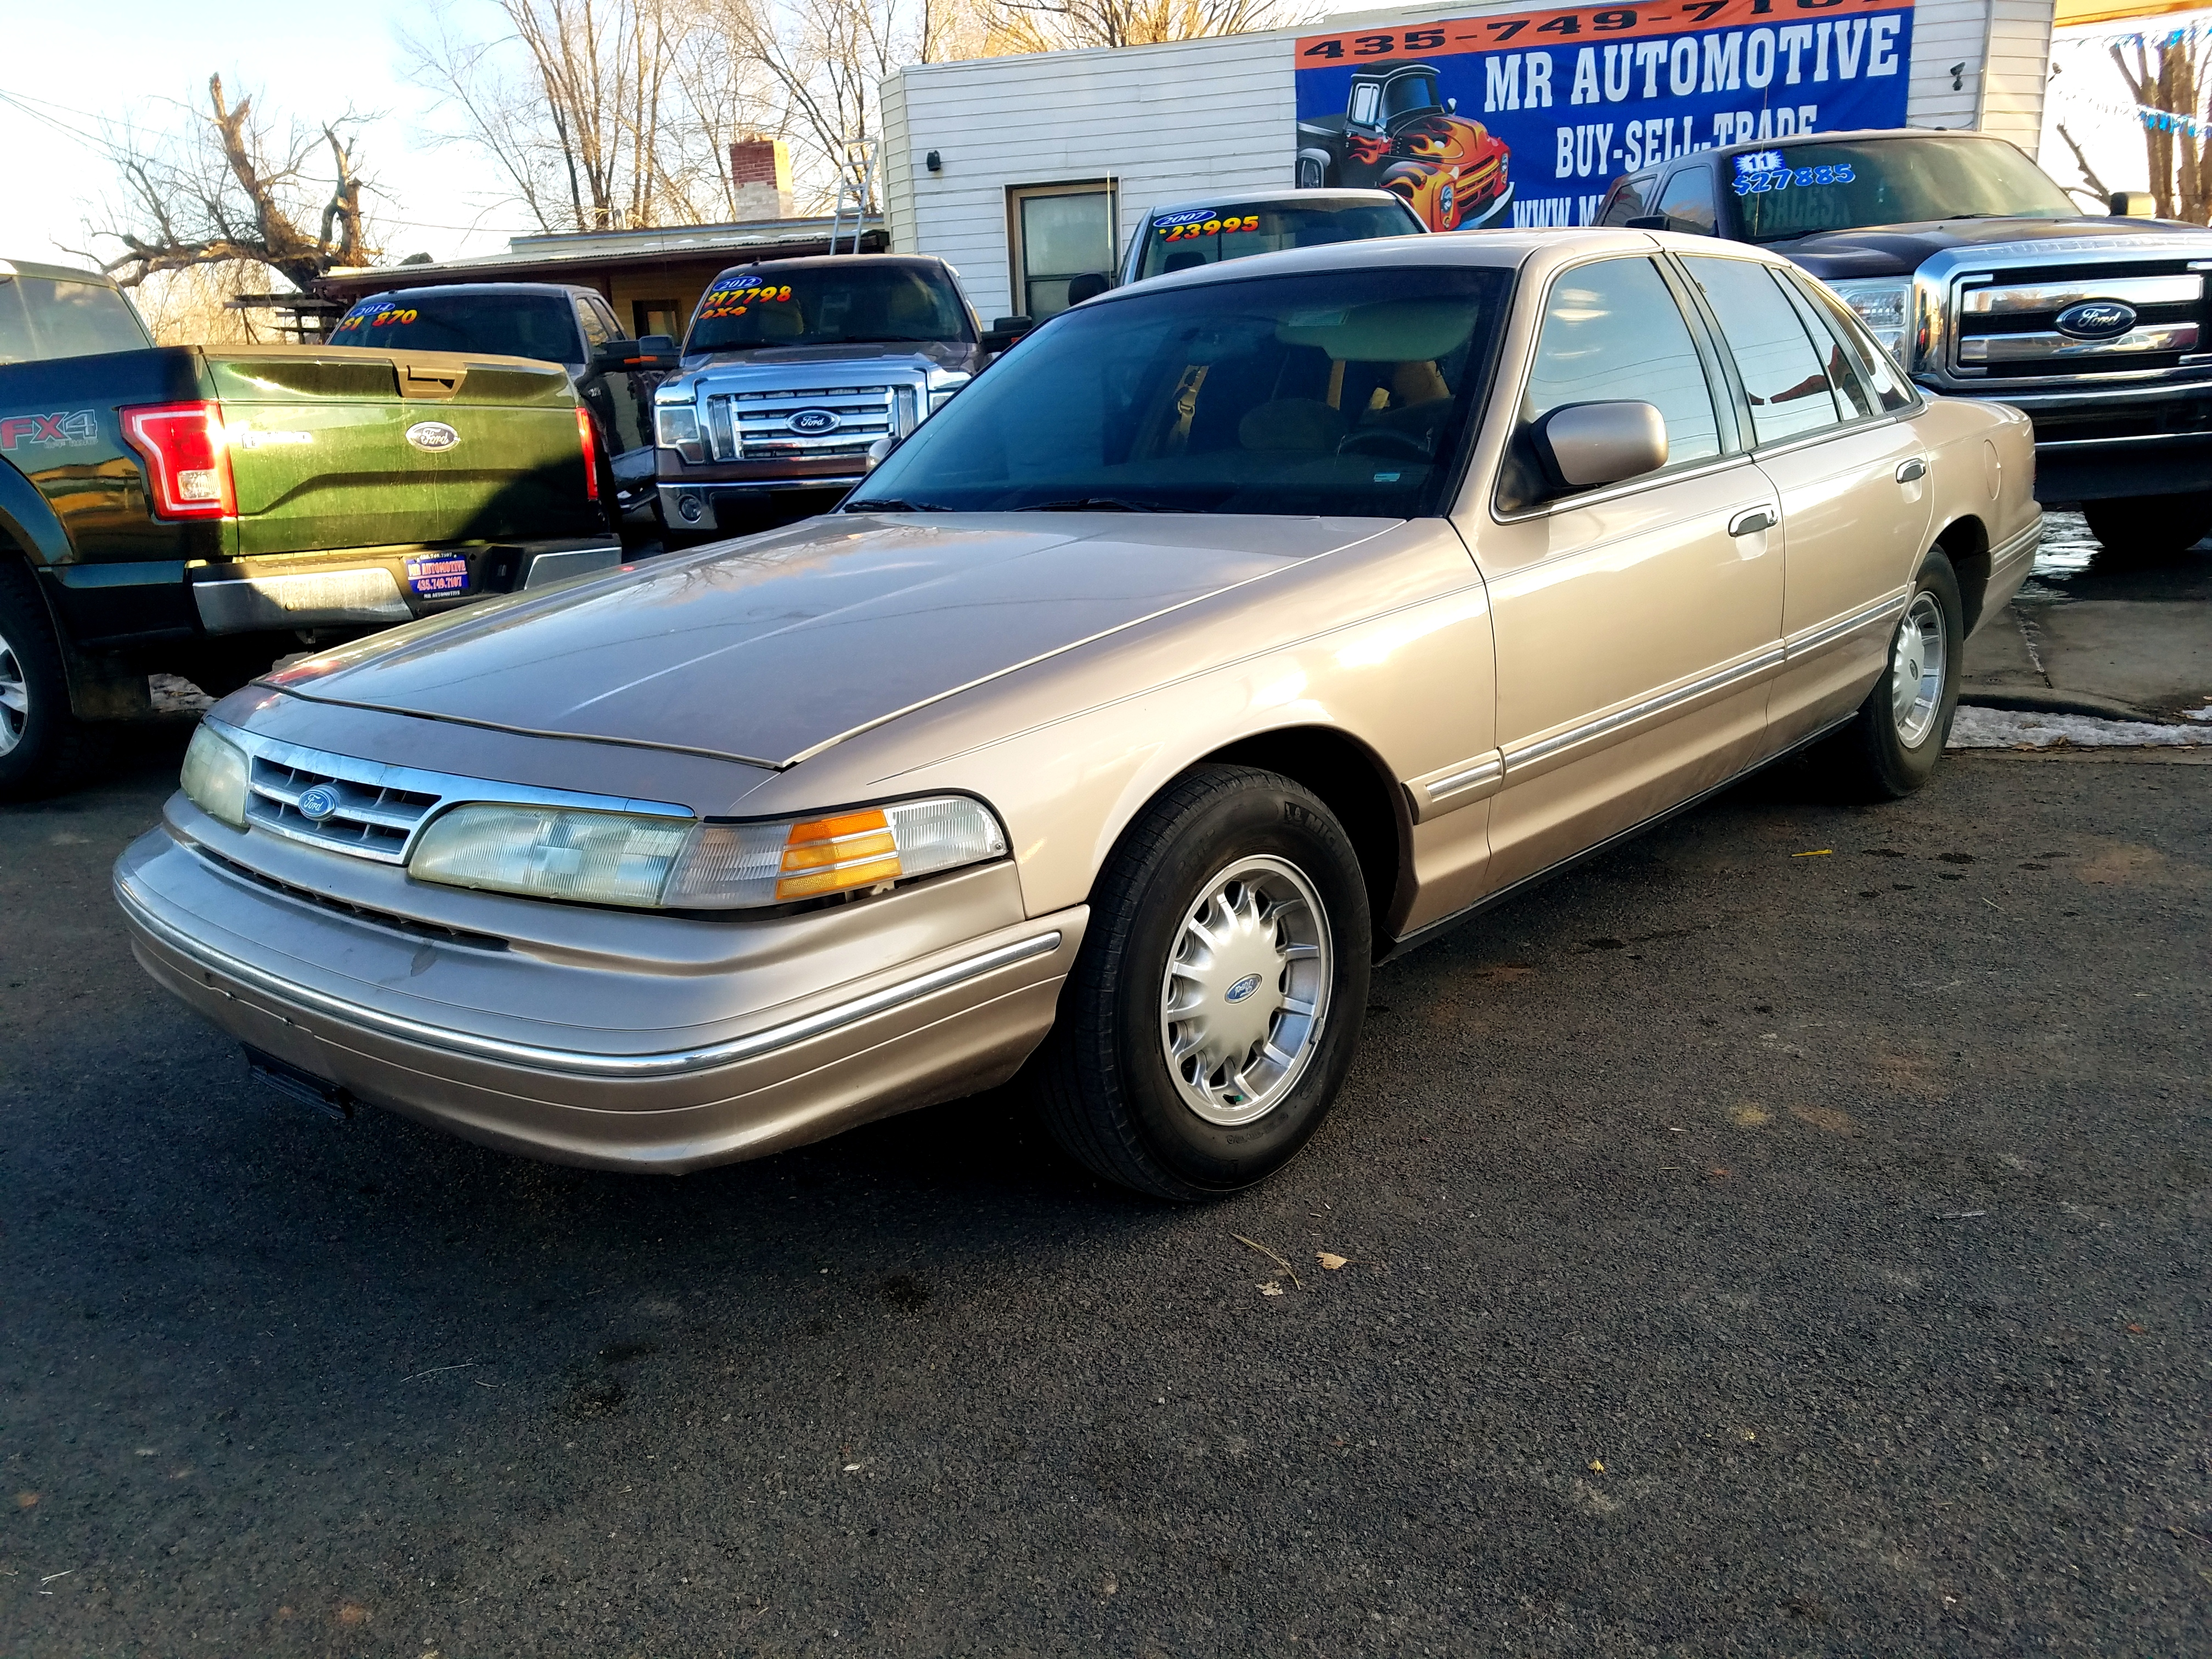 1997 FORD CROWN VICTORIA $3,000